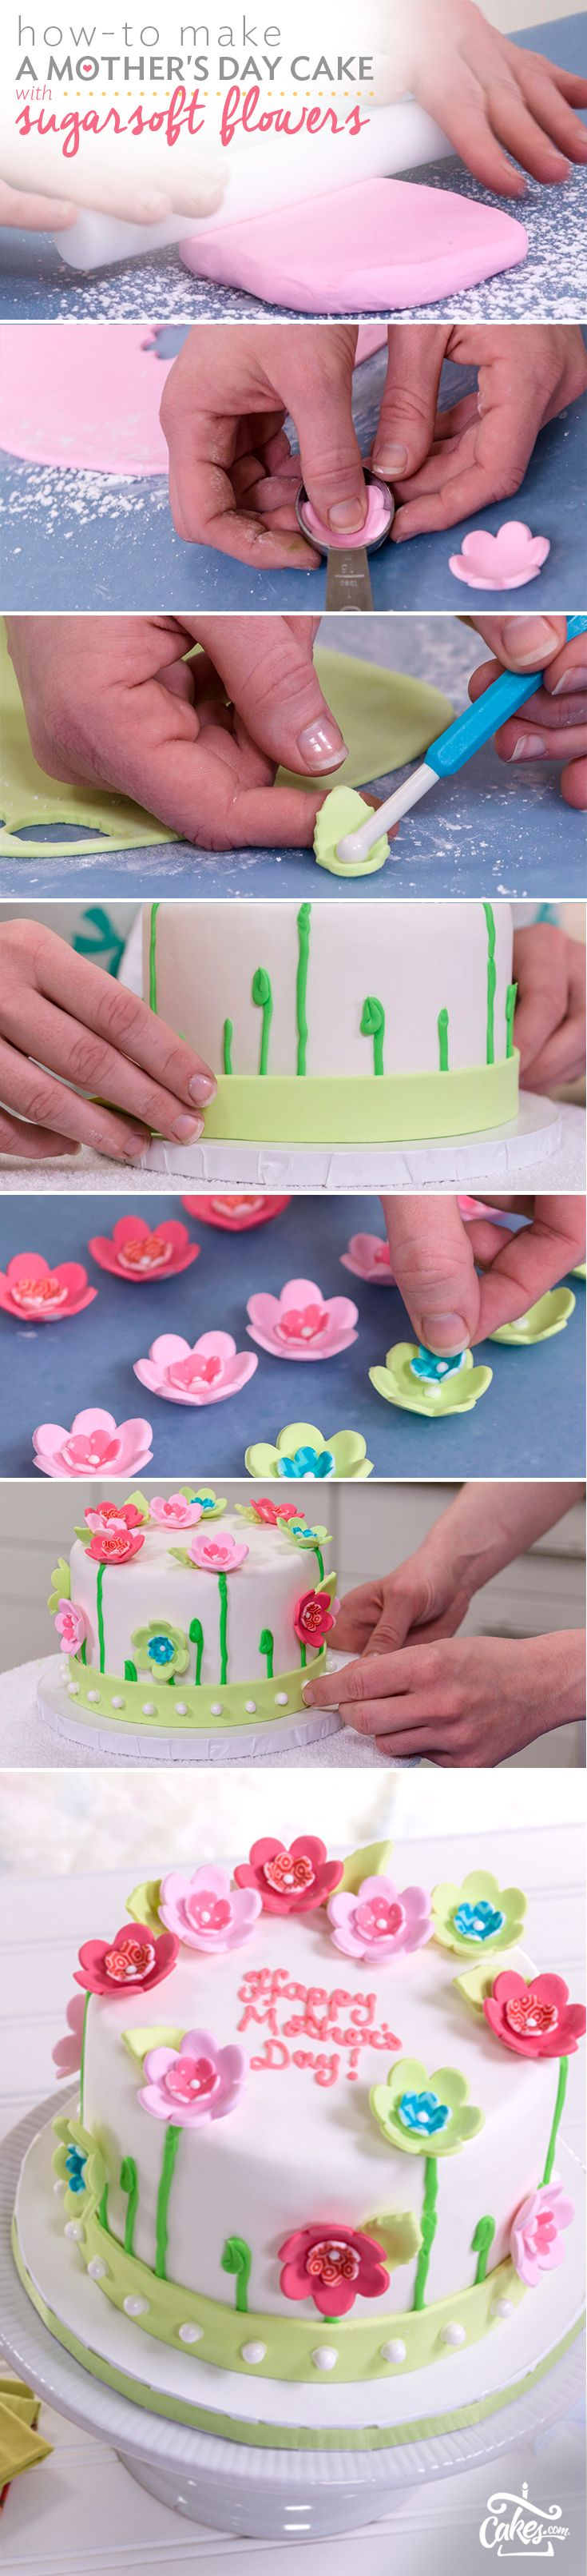 Learn how to make a fondant flower cake for Mothers Day with tasty SugarSoft…